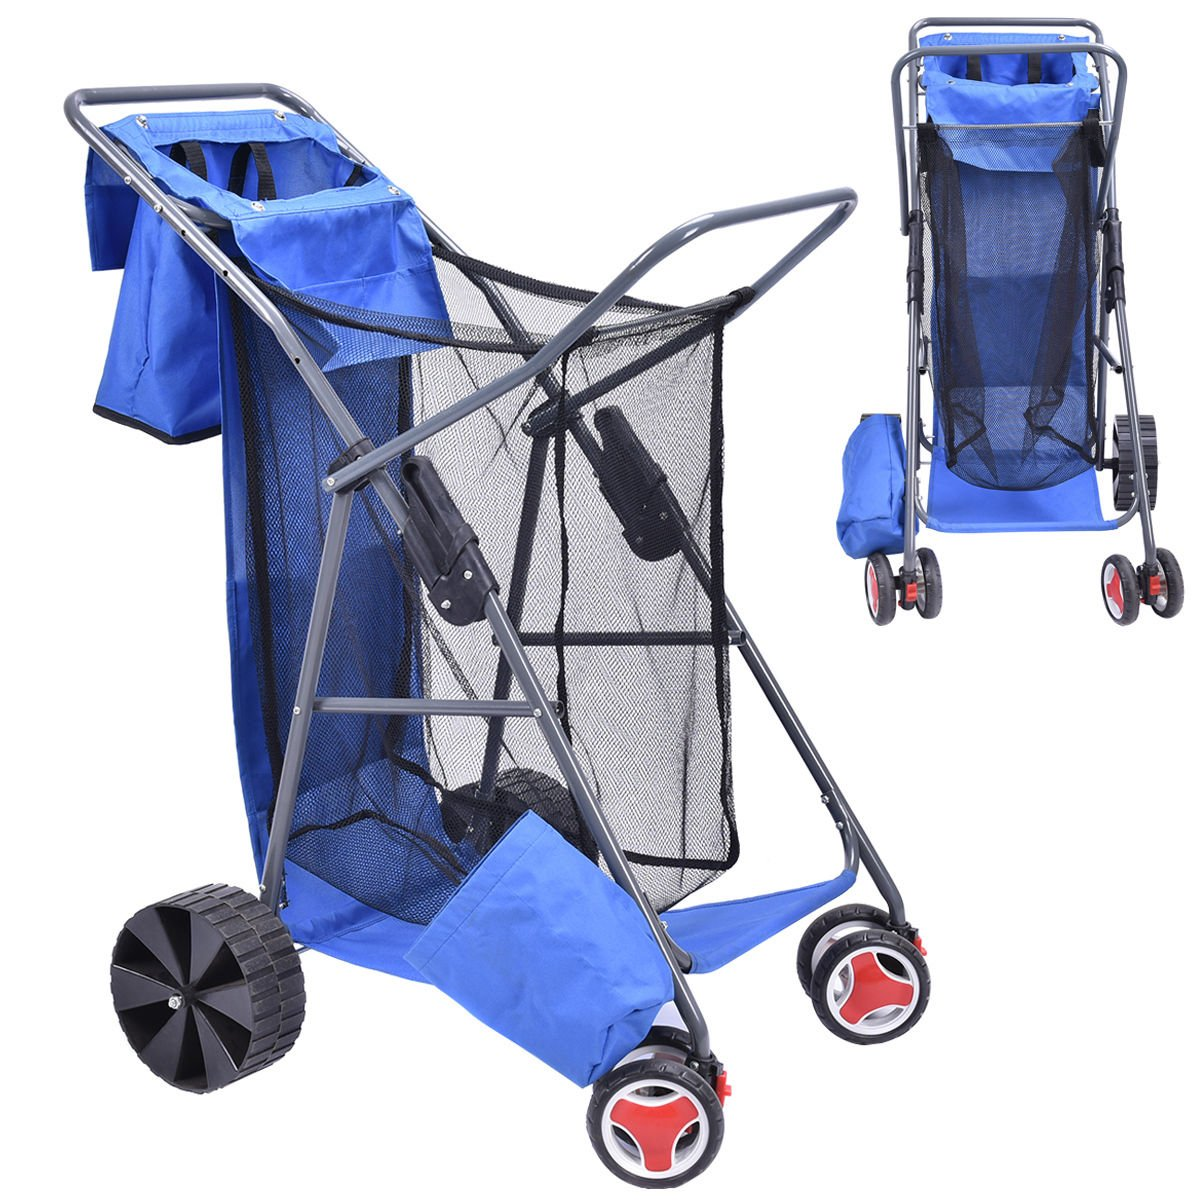 Deluxe Foldable Beach Wonder Tote Cart Folding Storage Transport Wheeler Trolley by Supershop®